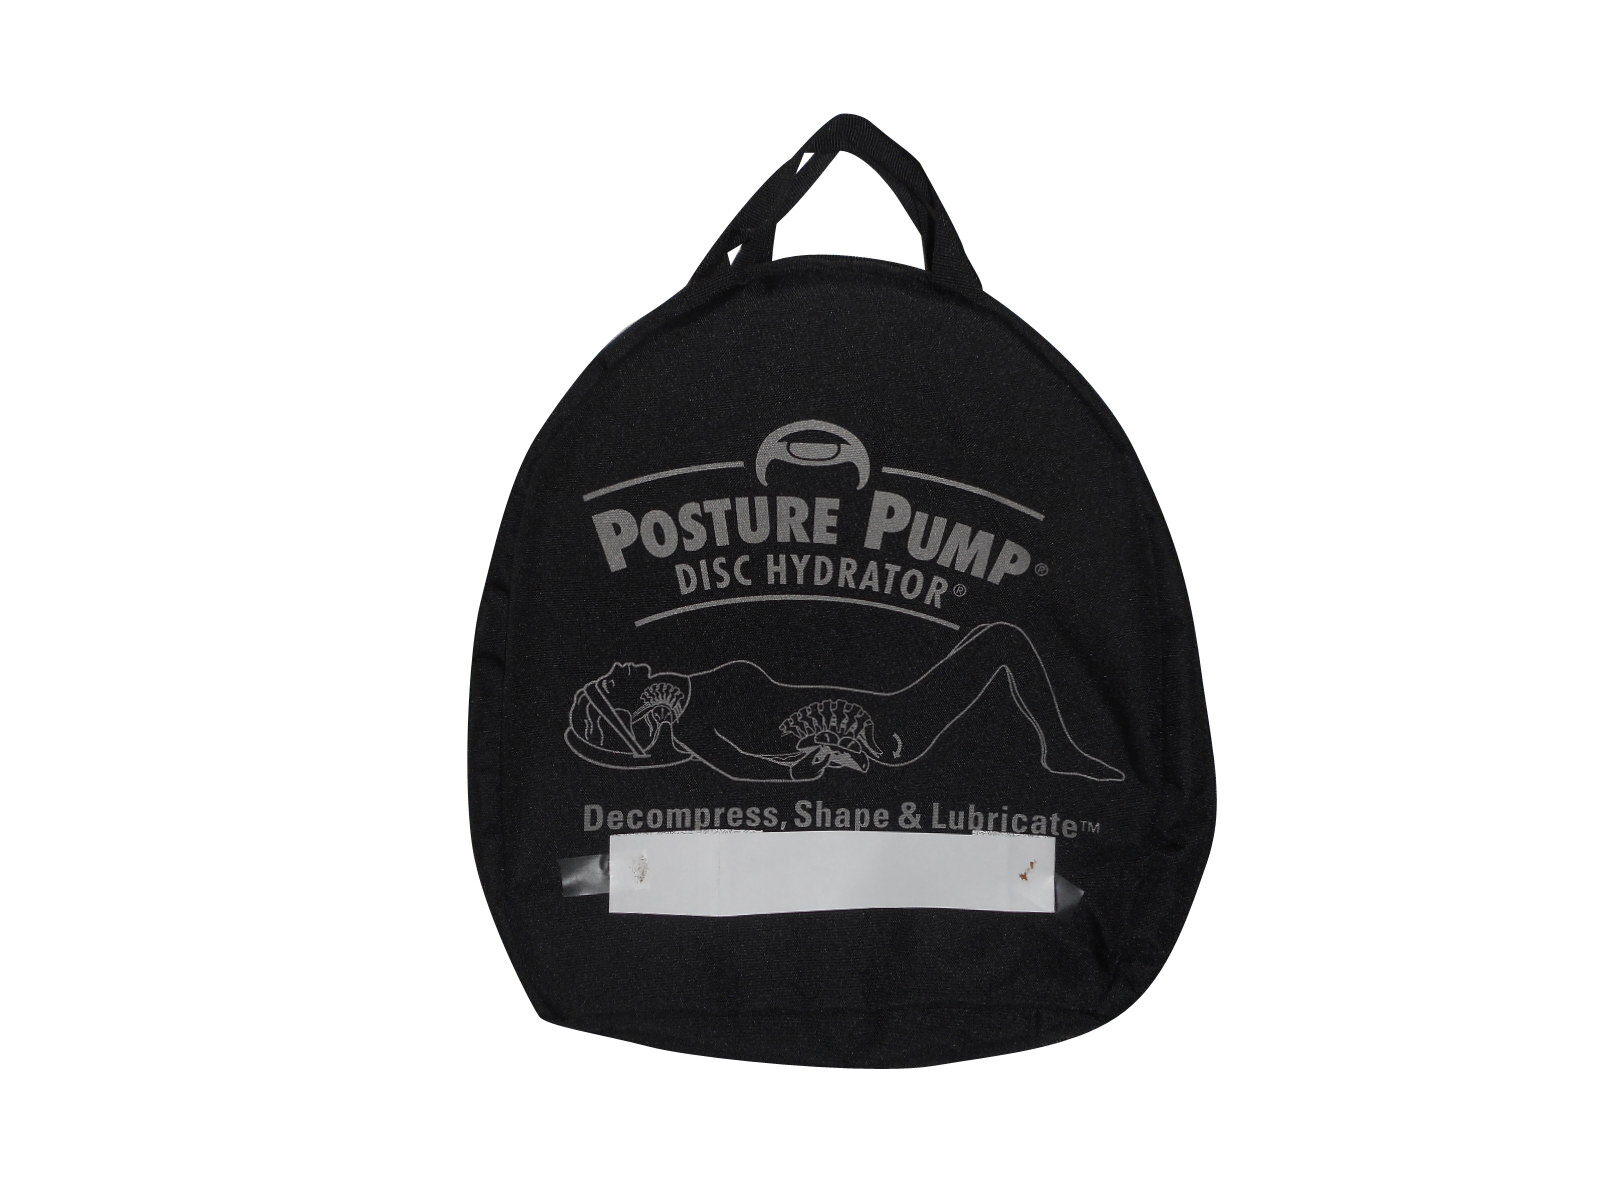 как выглядит Posture pump bag, padded with mesh sleeve and pockets for other accessories. фото